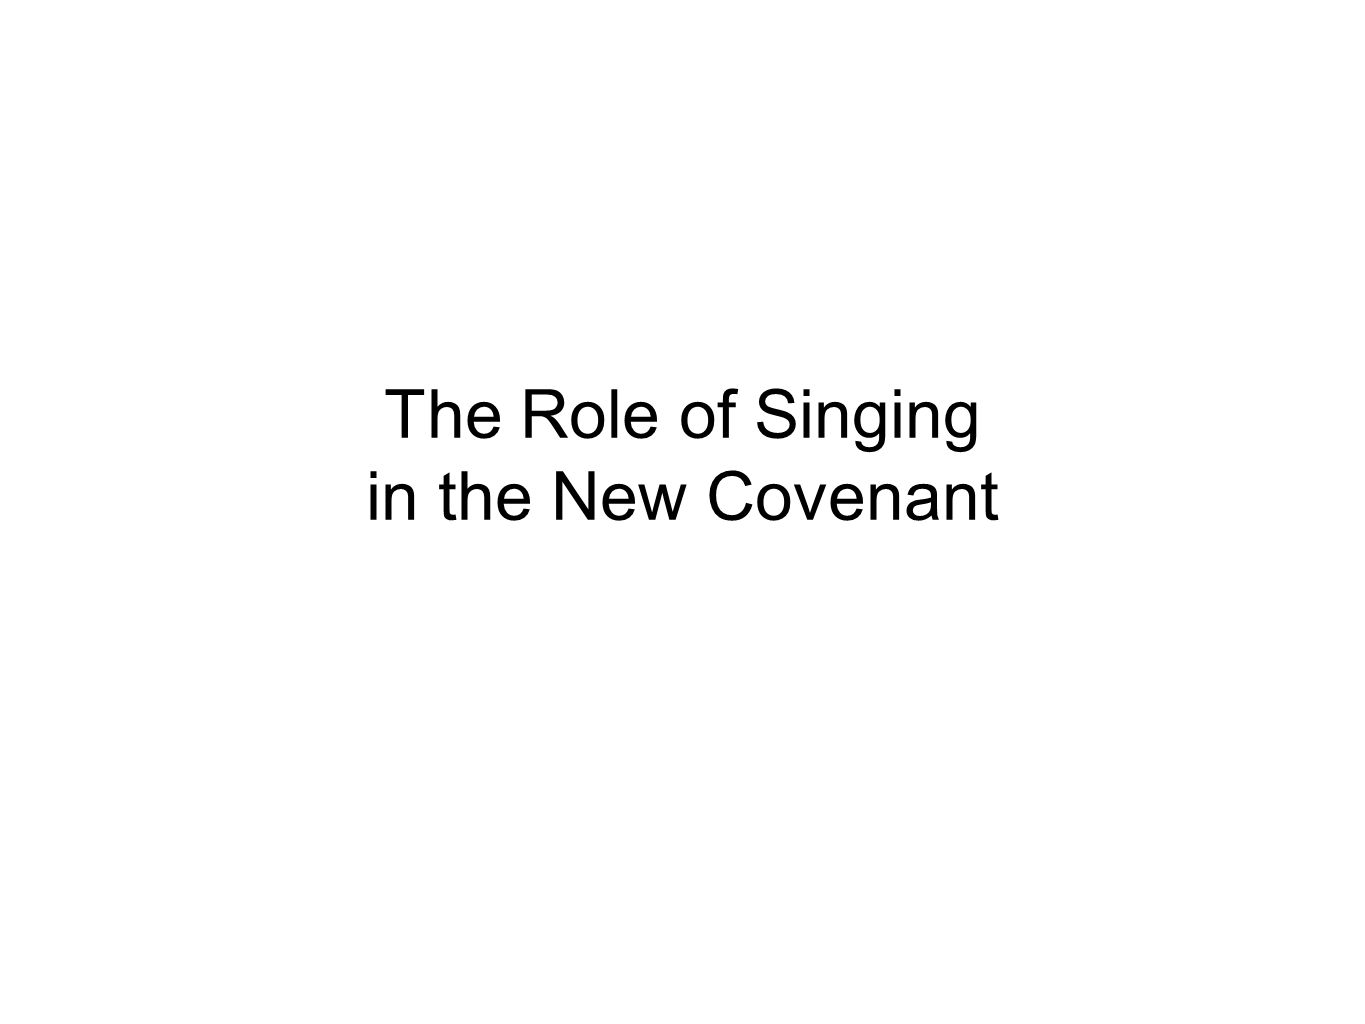 The Role of Singing in the New Covenant